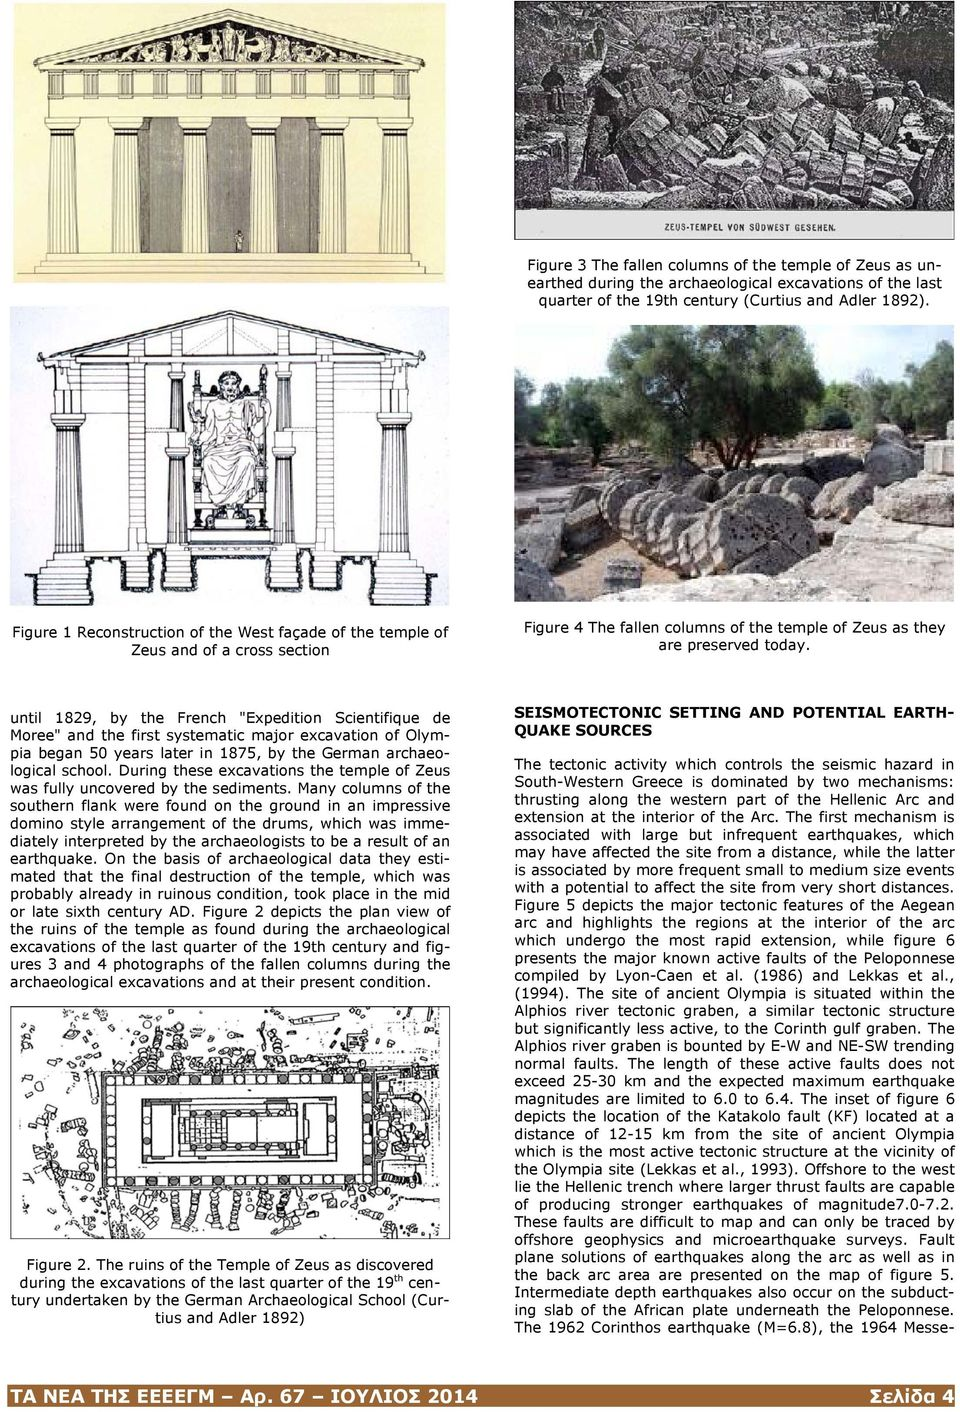 "until 1829, by the French ""Expedition Scientifique de Moree"" and the first systematic major excavation of Olympia began 50 years later in 1875, by the German archaeological school."